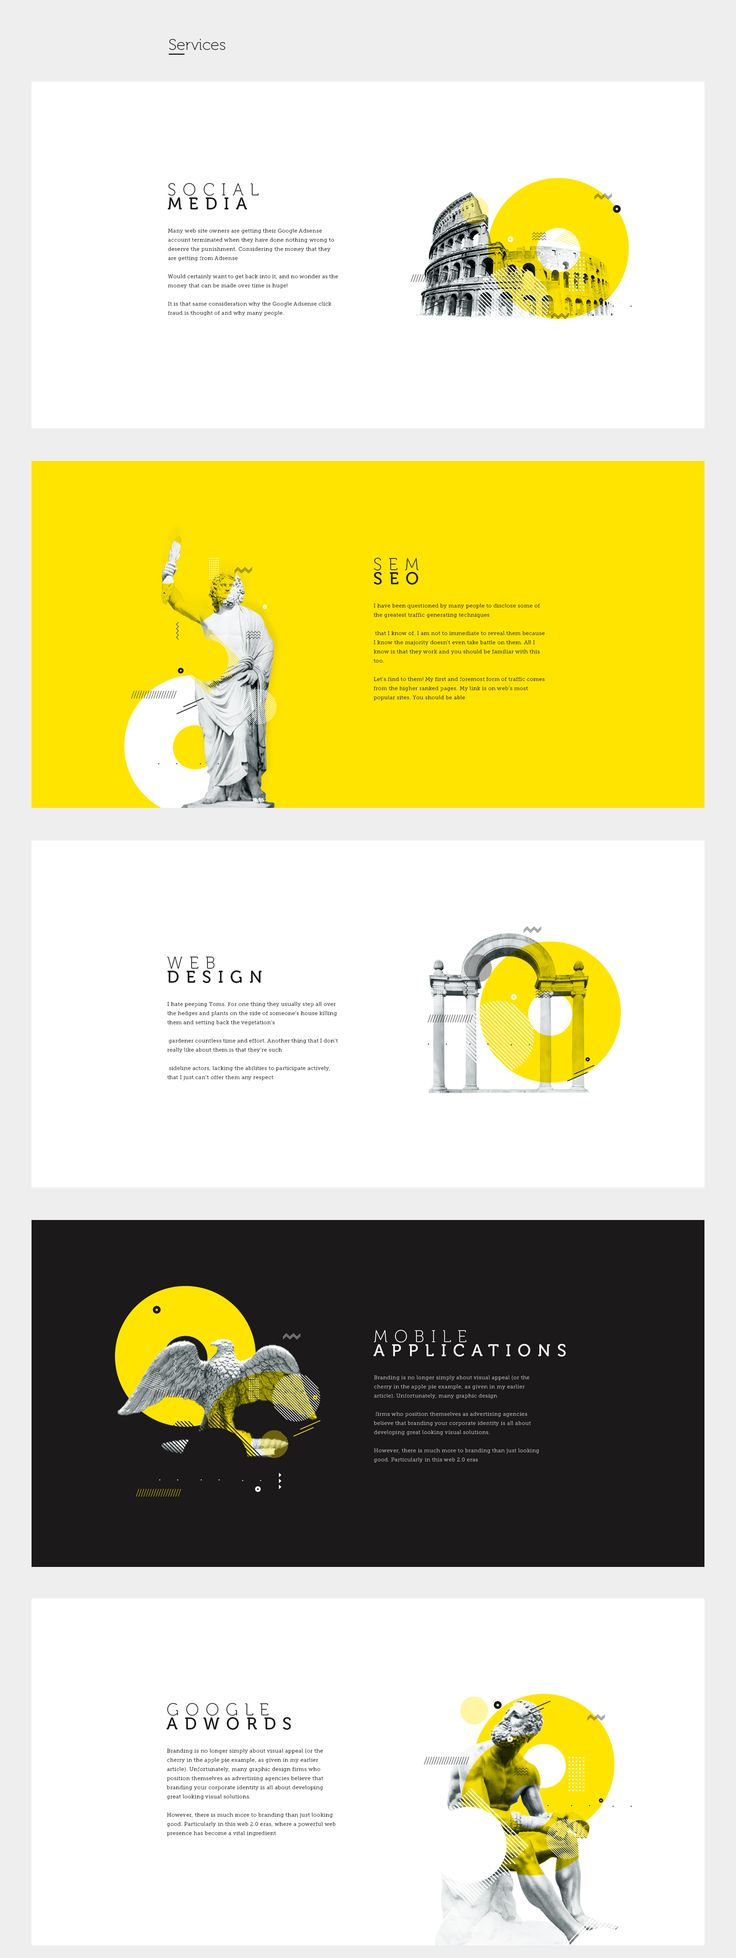 Dottopia web design for graphics services. Yellow website